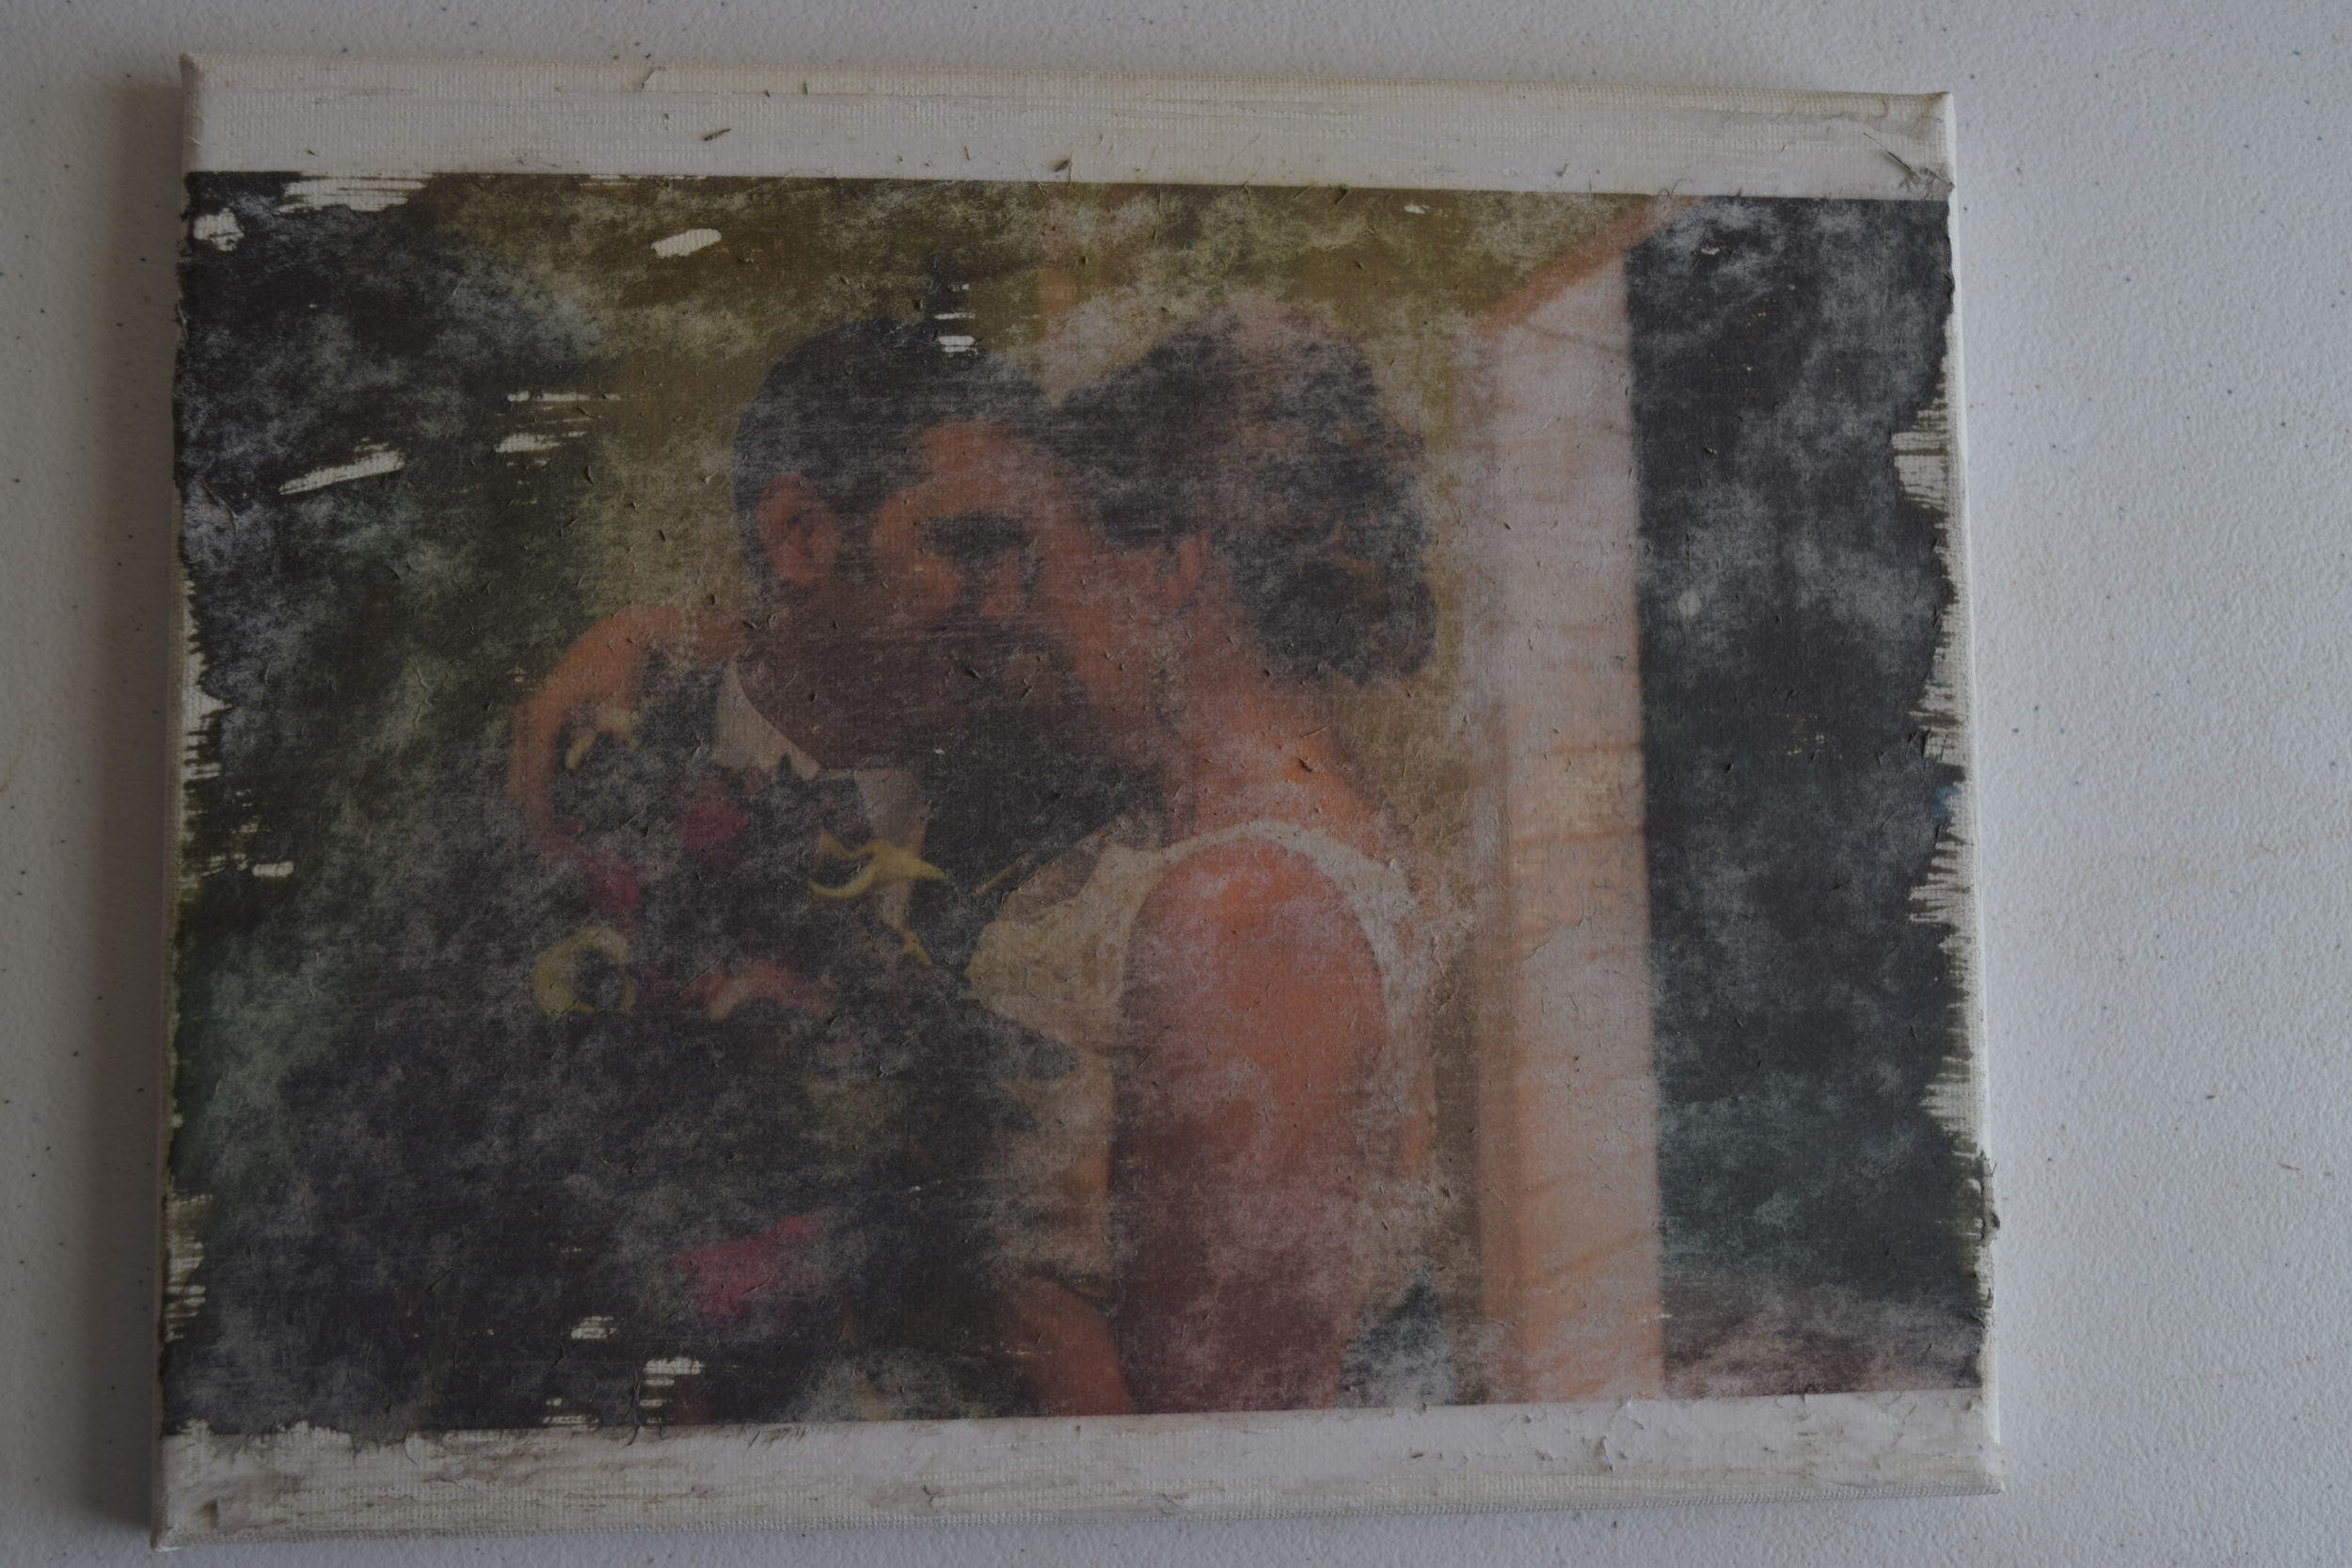 Photo transfer - too wet